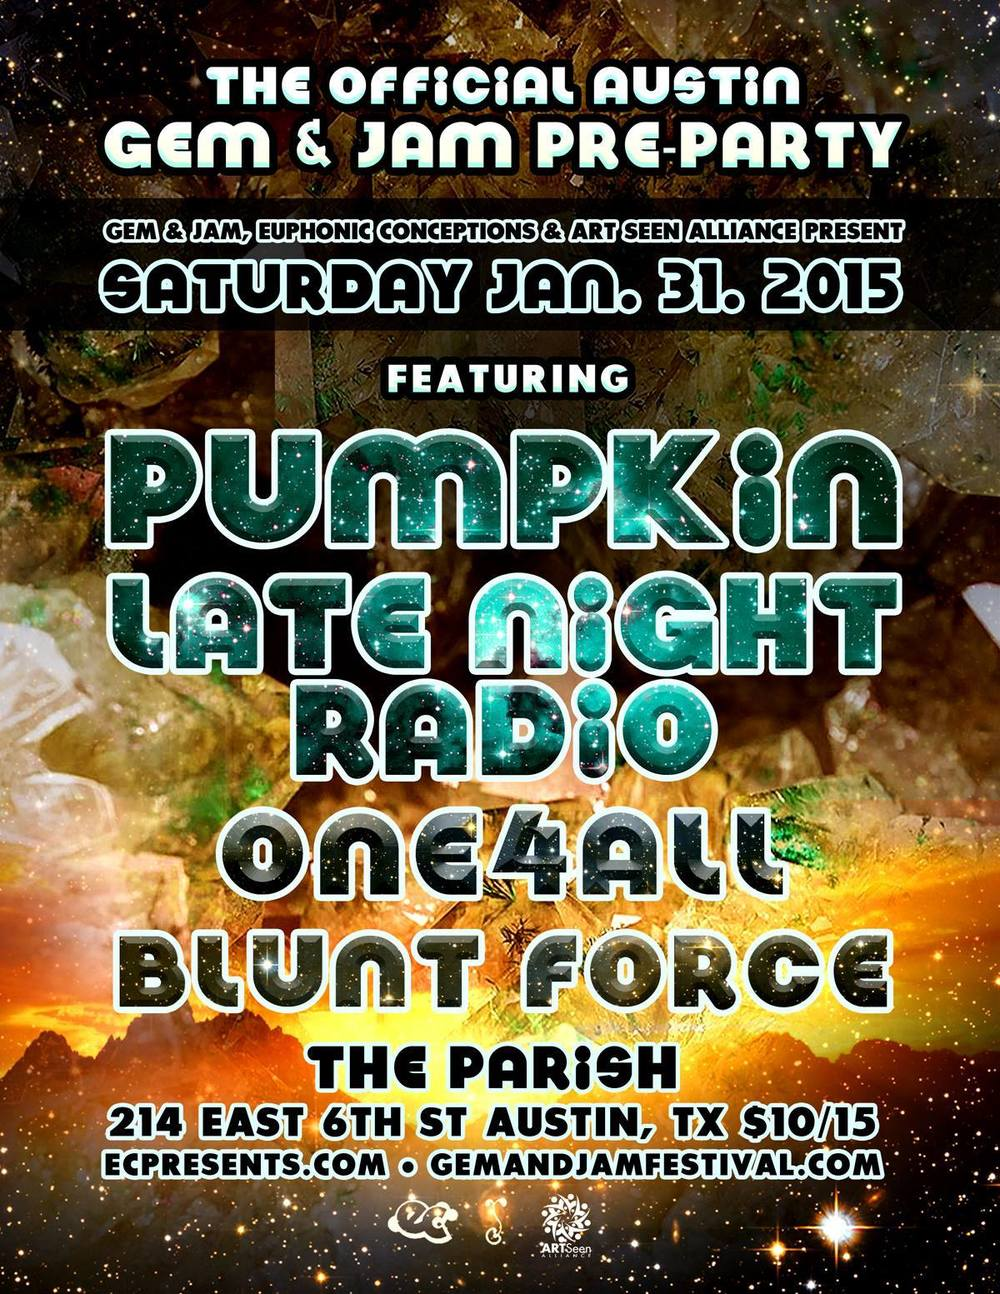 Blunt Force Gem and Jam Festival Party Pumpkin Austin Parish Late Night Radio One4all